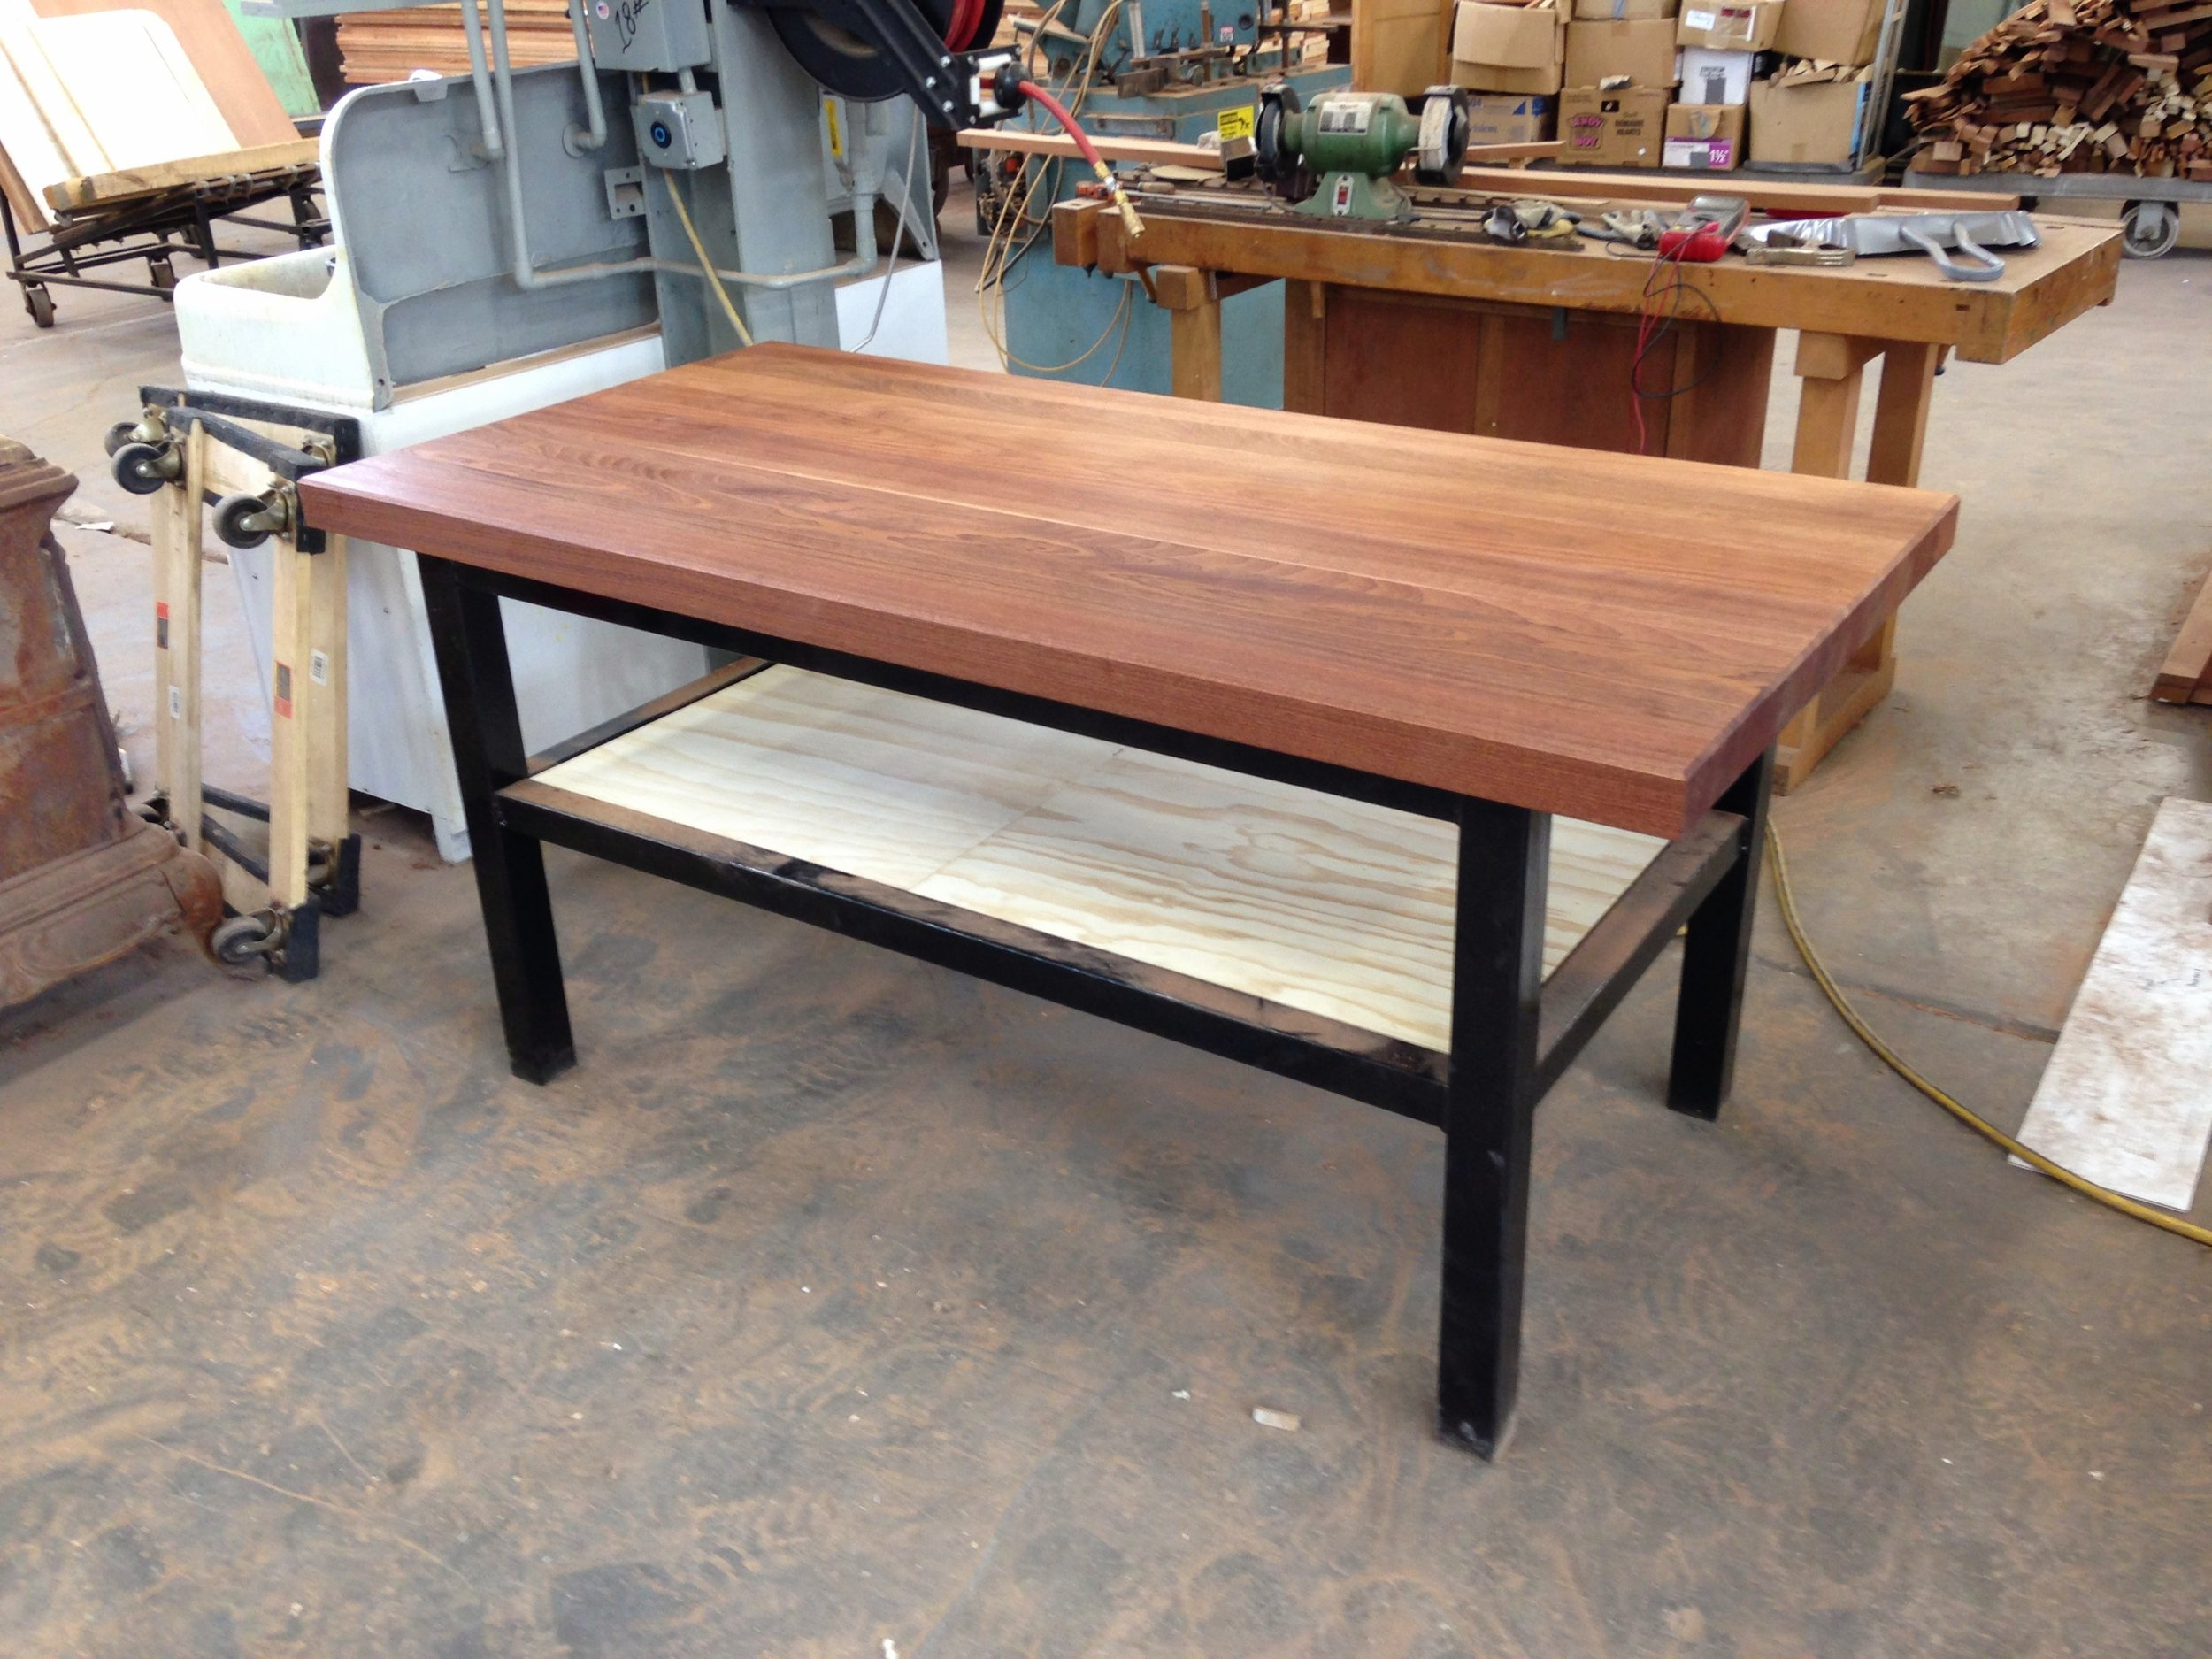 This is a Sapele Mahogany top with welded mild steel legs and structure.  We can do items of this variety with specific size and shape for a price competitive with furniture stores.  The top could be oak, reclaimed pine, cypress, or walnut flitch, all of which we stock.  Probably the best value we can offer in a custom furniture piece.